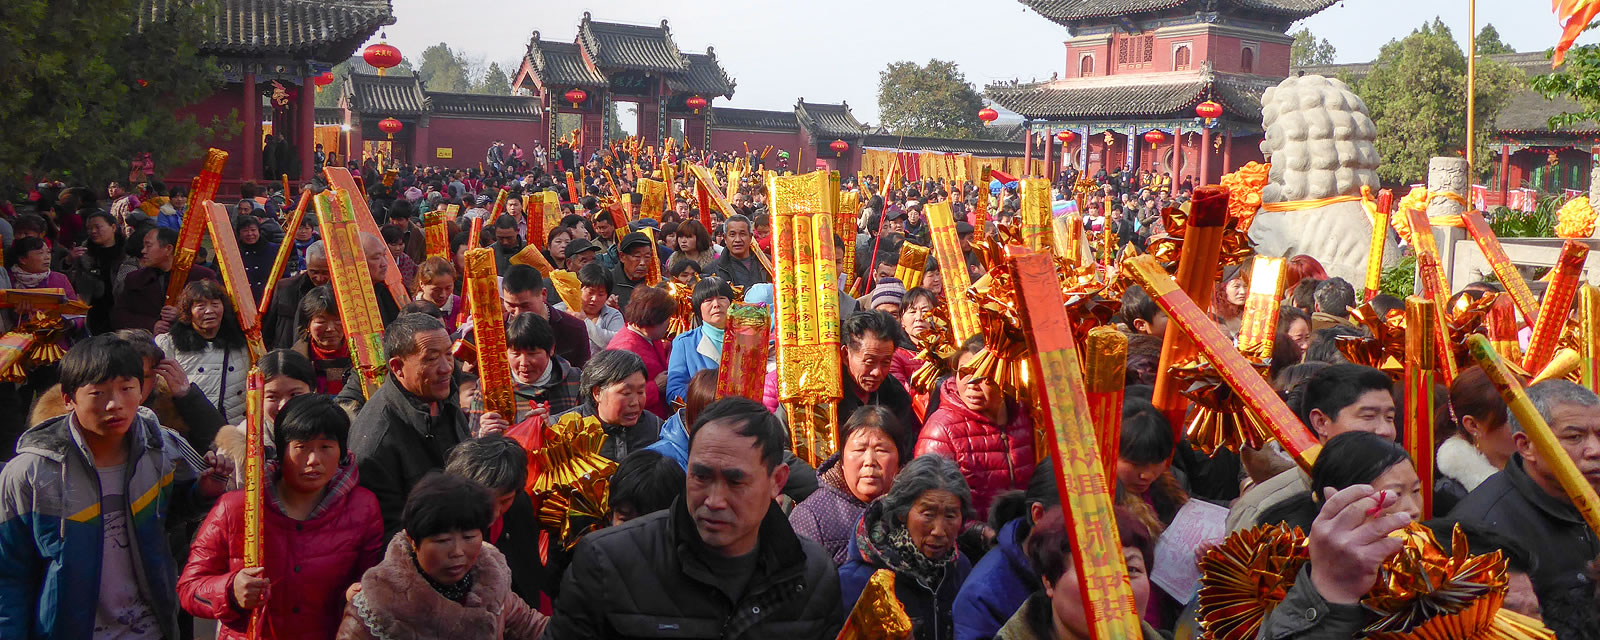 Temple fair in Zhoukou